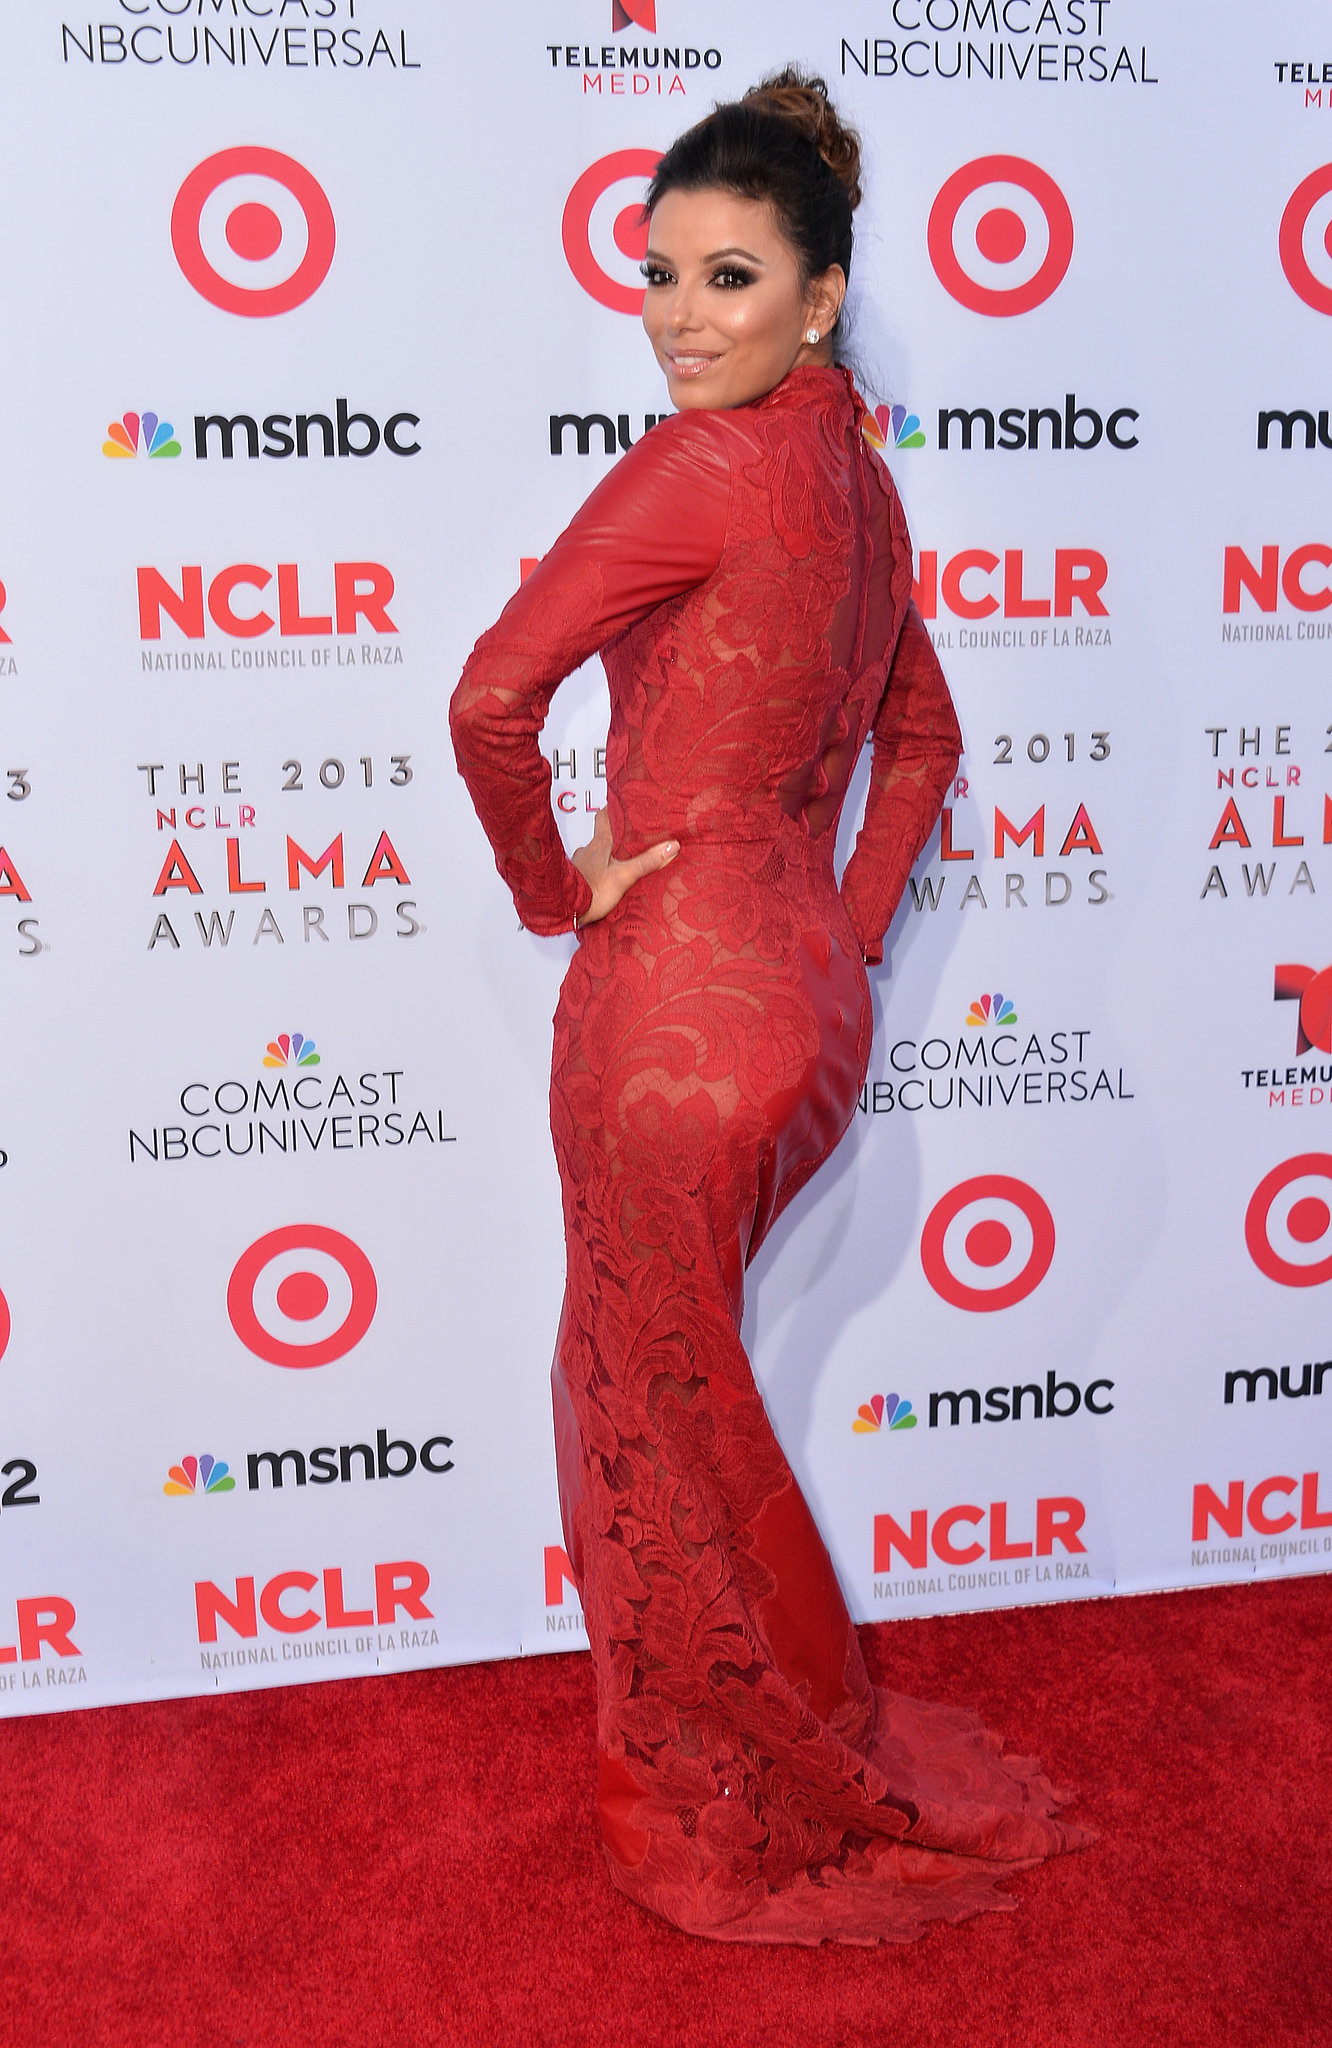 Eva Longoria wore fiery crimson dress red carpet 3a547